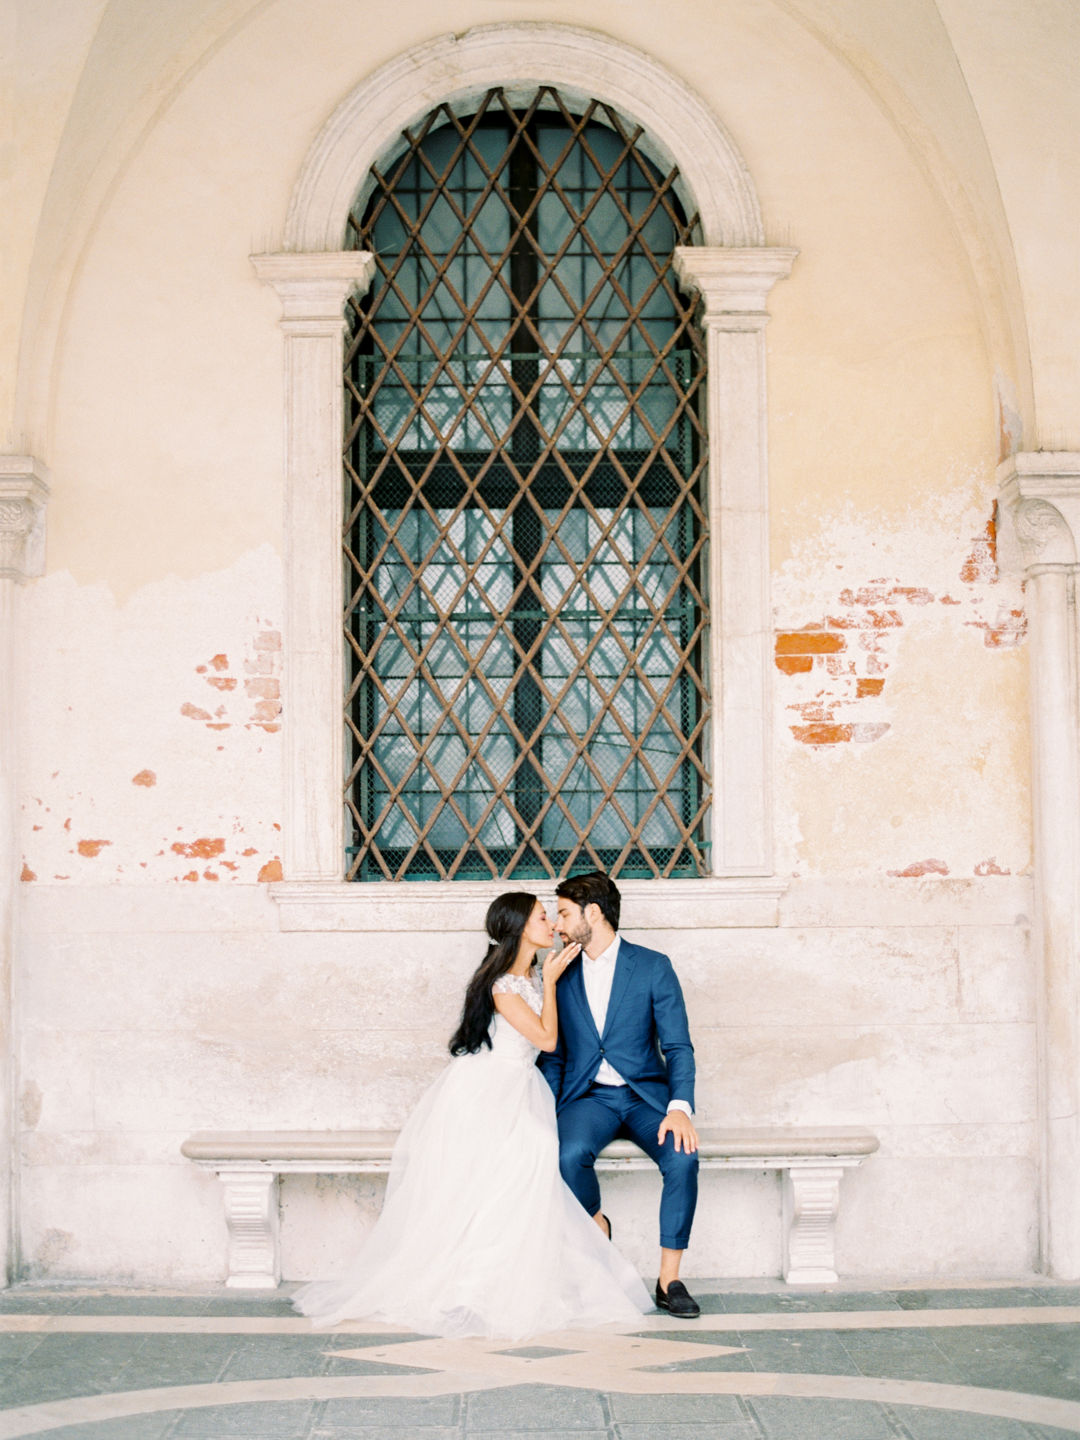 Francesco and Chloe, Venice